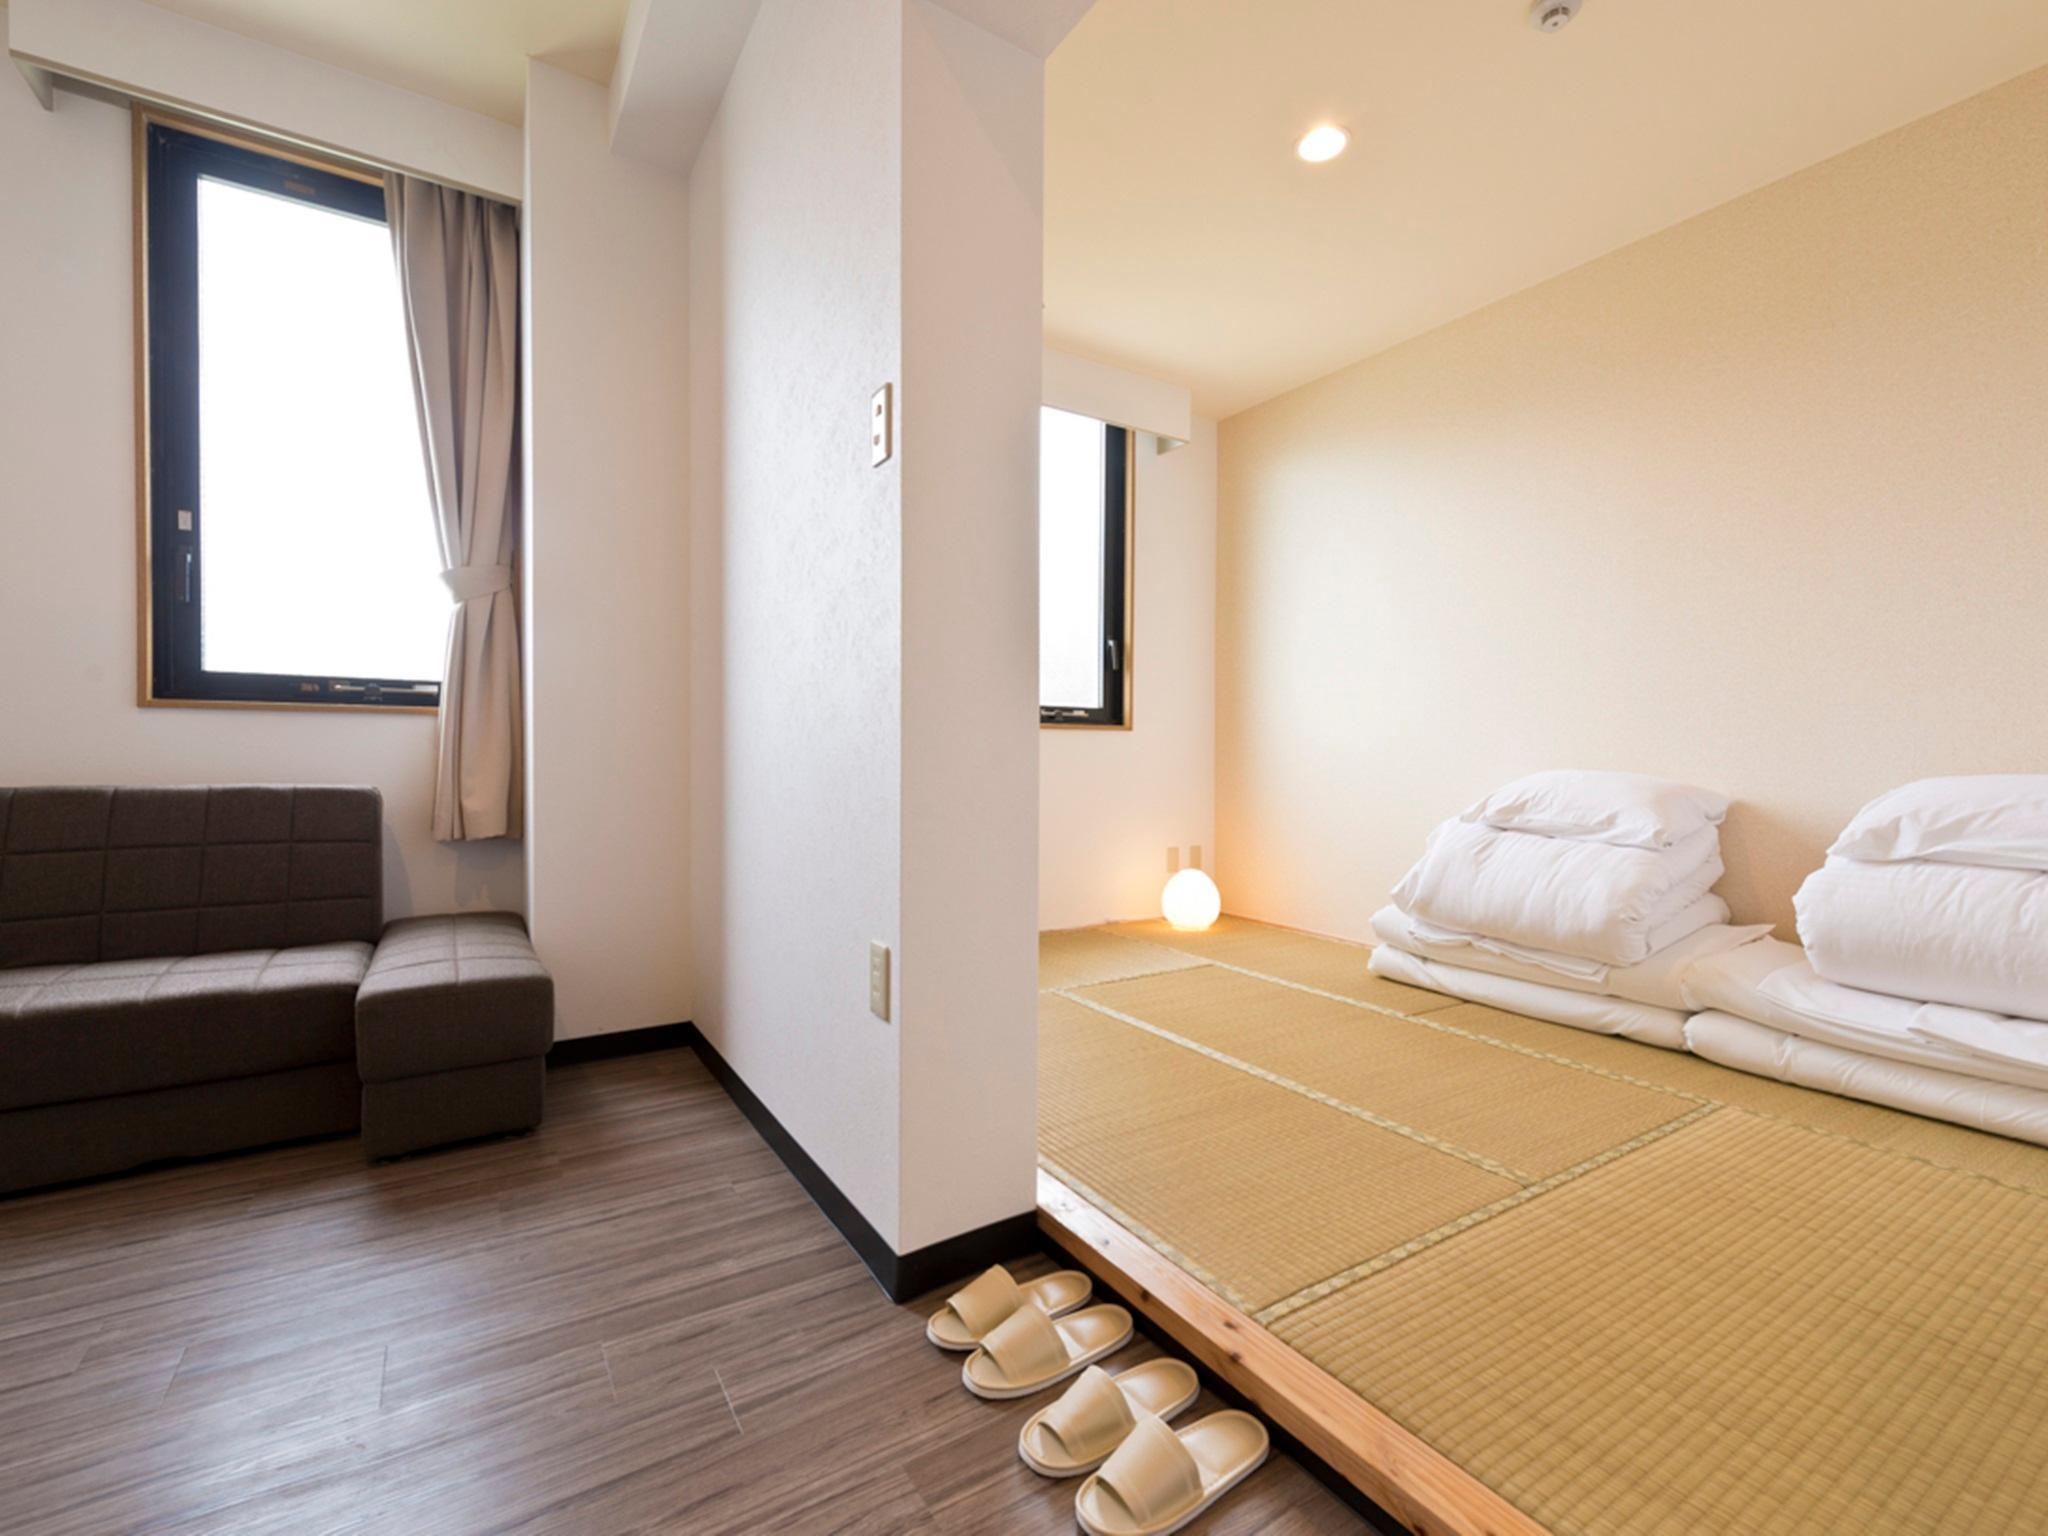 for the beds japanese best sofa everyday sizes mattress comfortable most futon good floor sleeping futons bed rated floors top